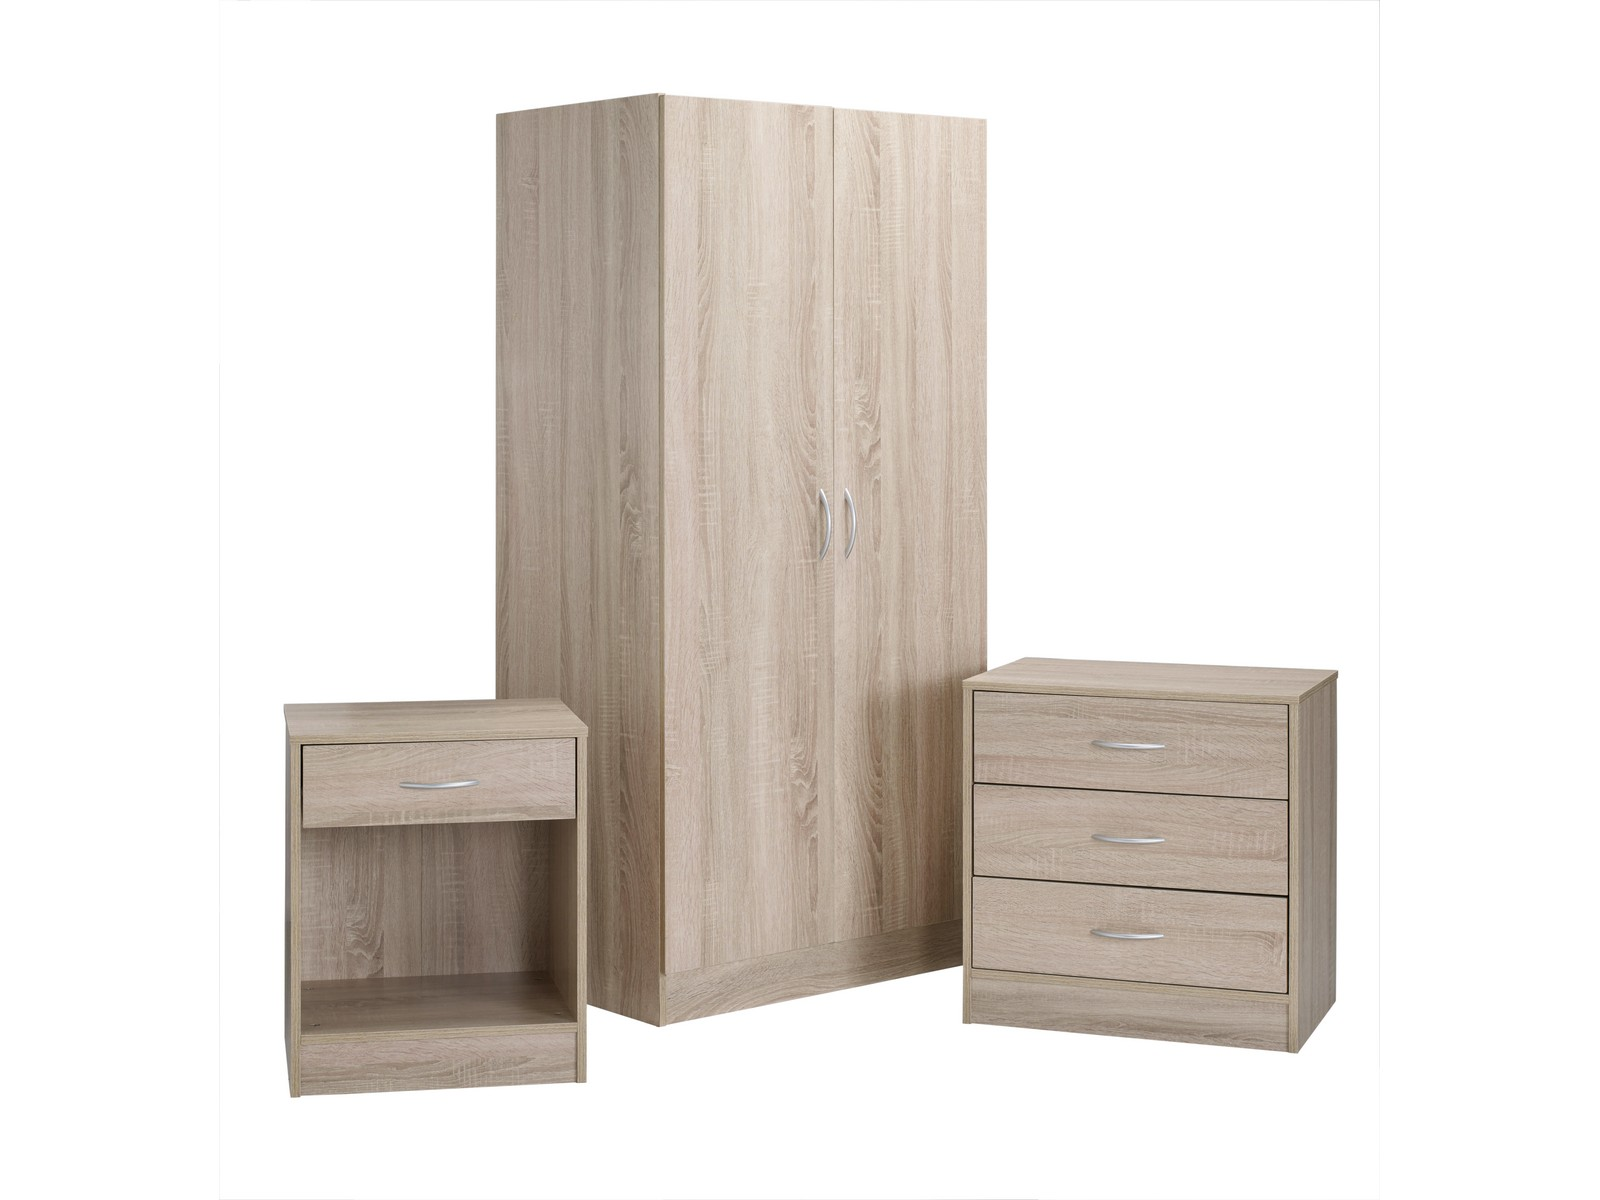 Delta Oak 3 Piece Bedroom Furniture Set 2 Door Wardrobe Chest